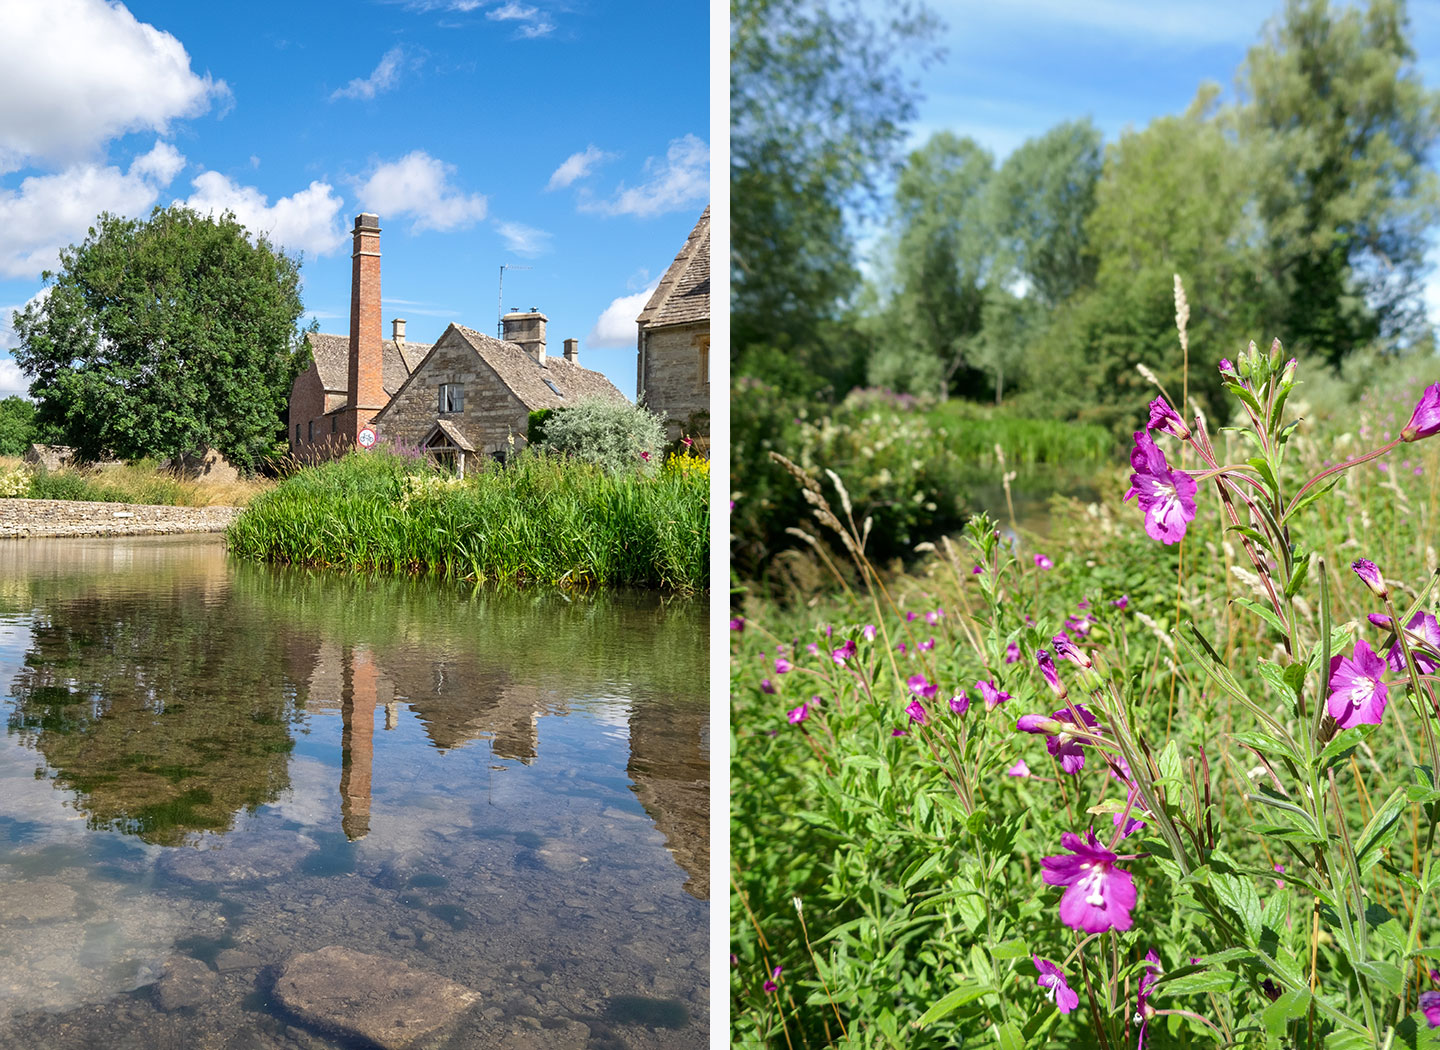 Walking to Upper Slaughter in the Cotswolds